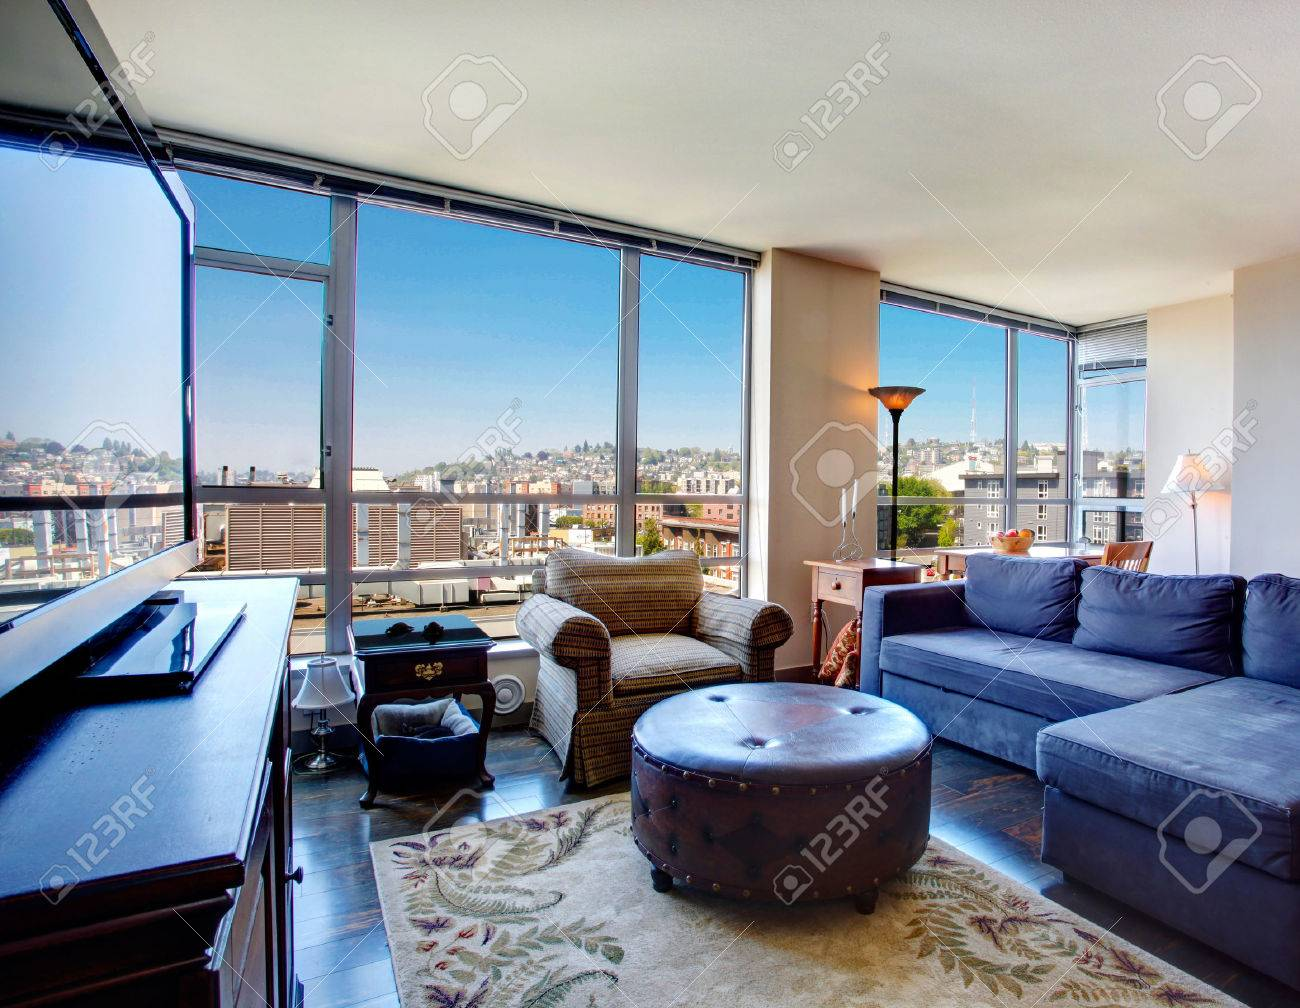 Modern Apartment With Amazing City View Through The Glass Wall Stock Photo Picture And Royalty Free Image Image 27143921